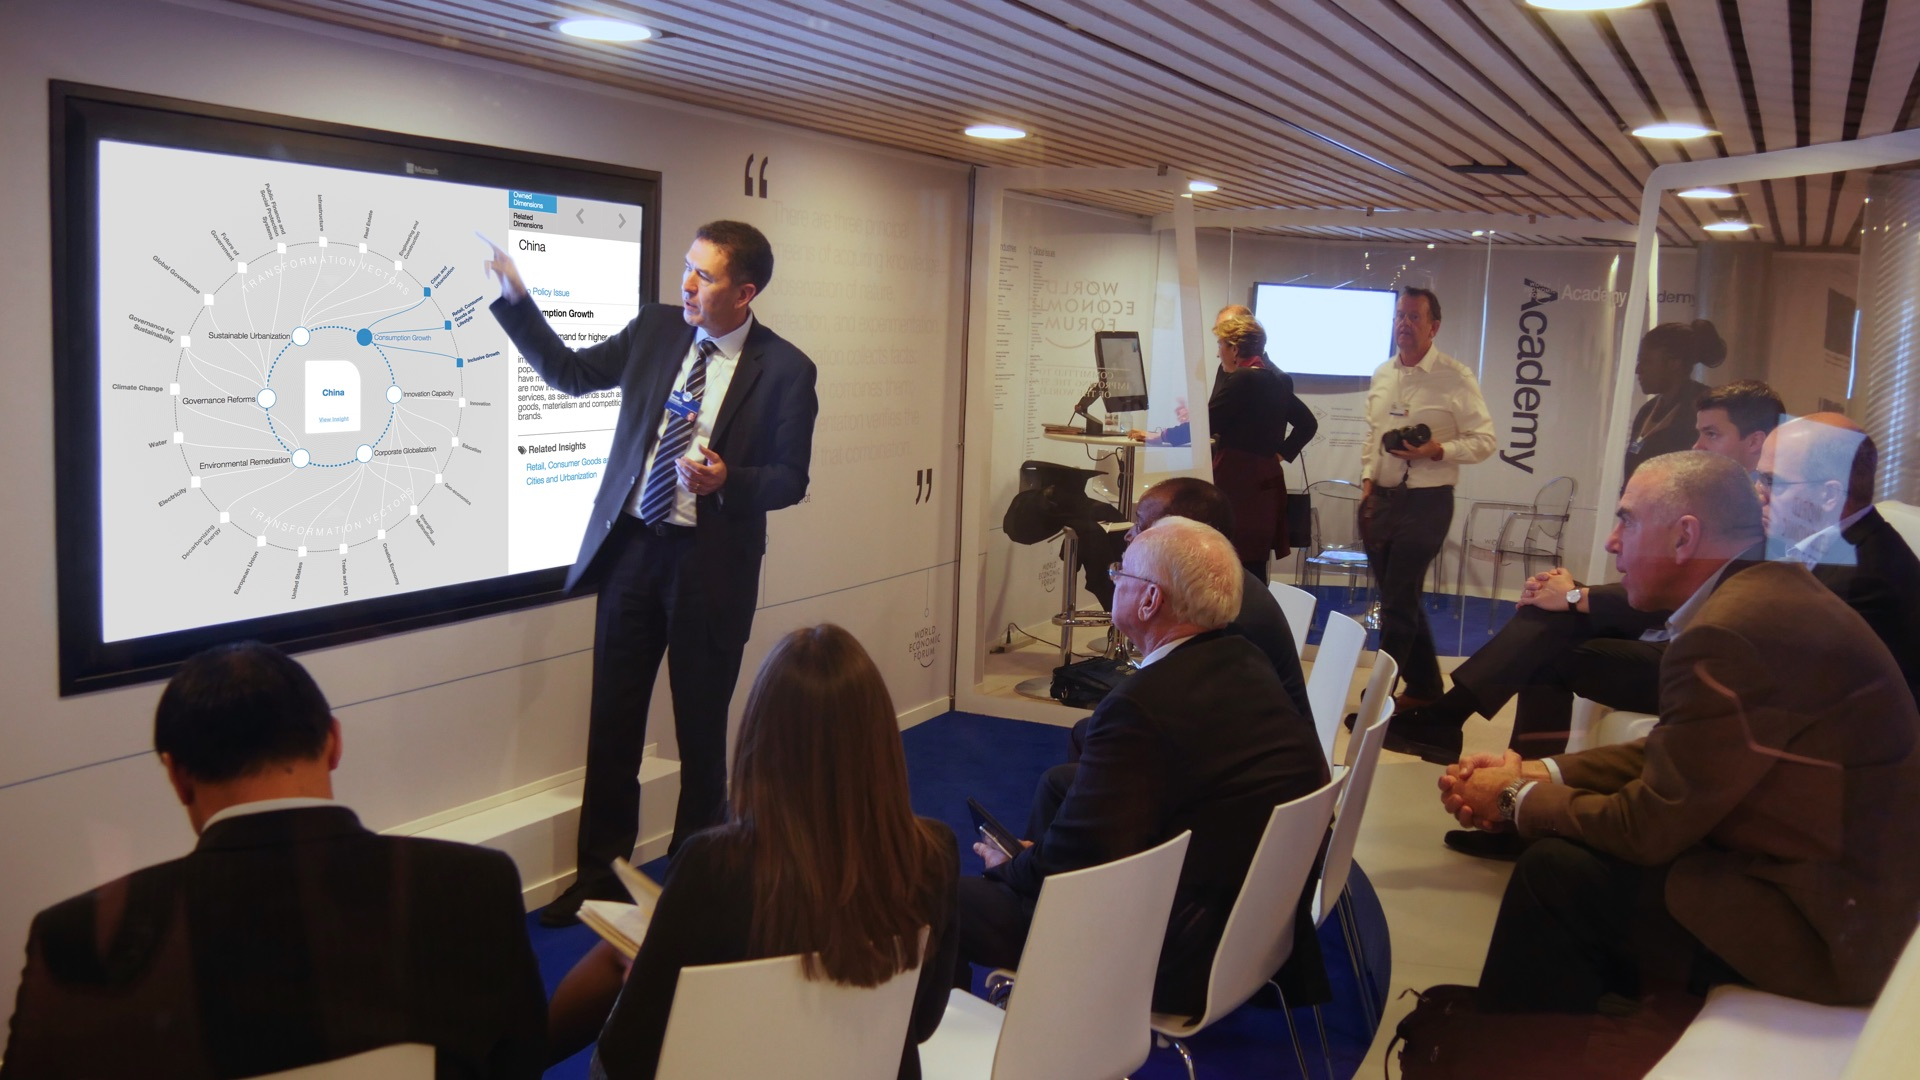 Transformation Maps launch at the World Economic Forum in Davos